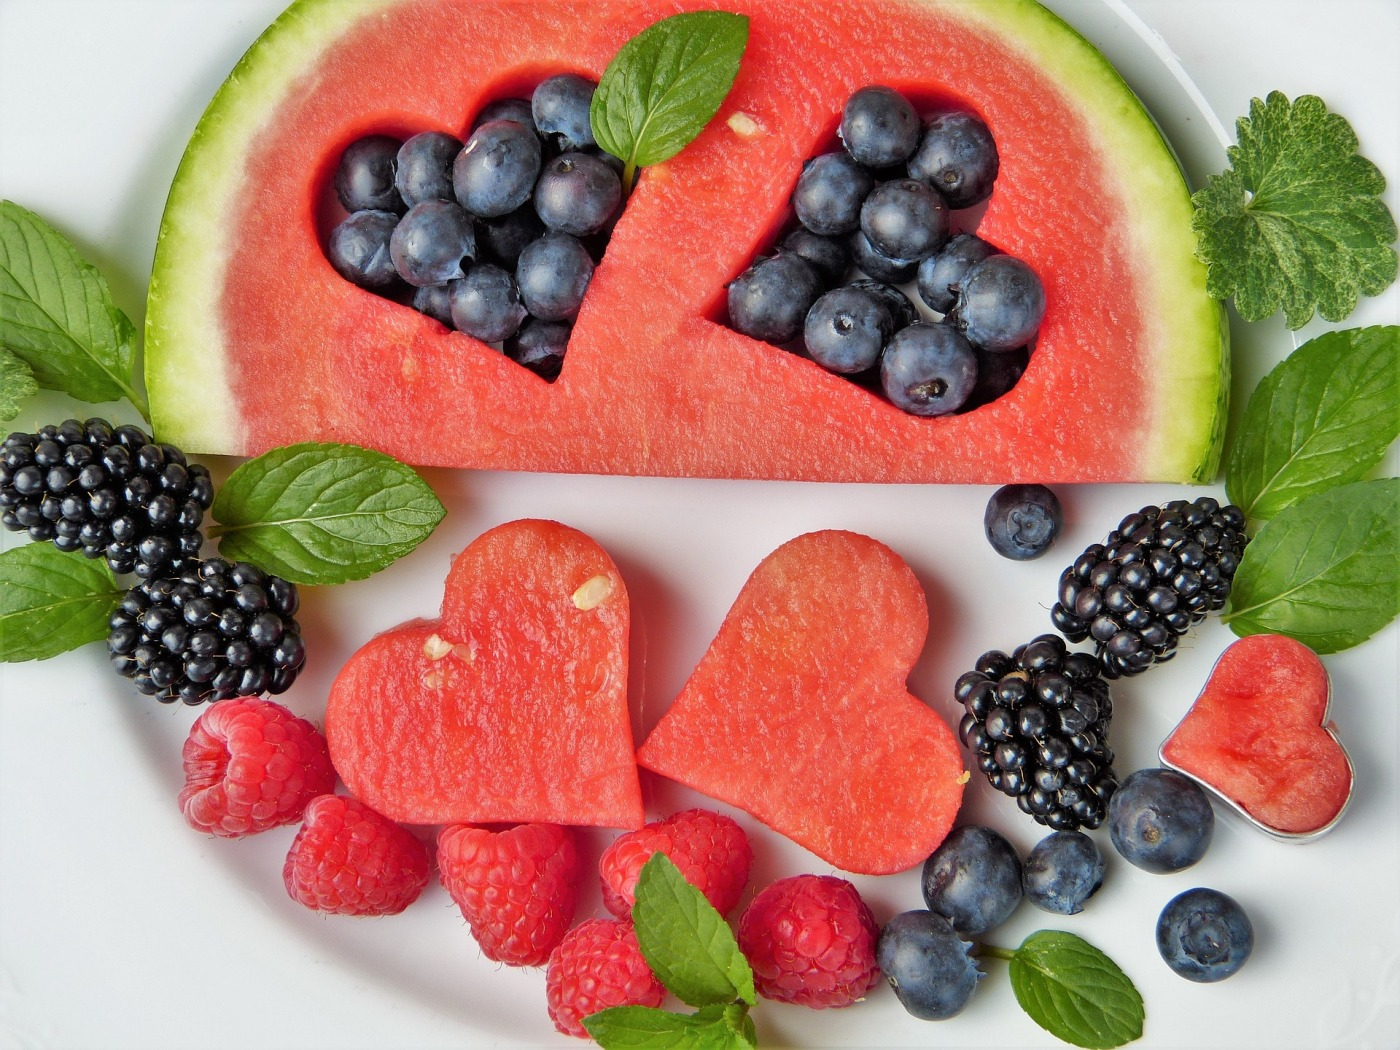 Photo by silviarita. https://pixabay.com/photos/fruit-watermelon-fruits-heart-2367029/